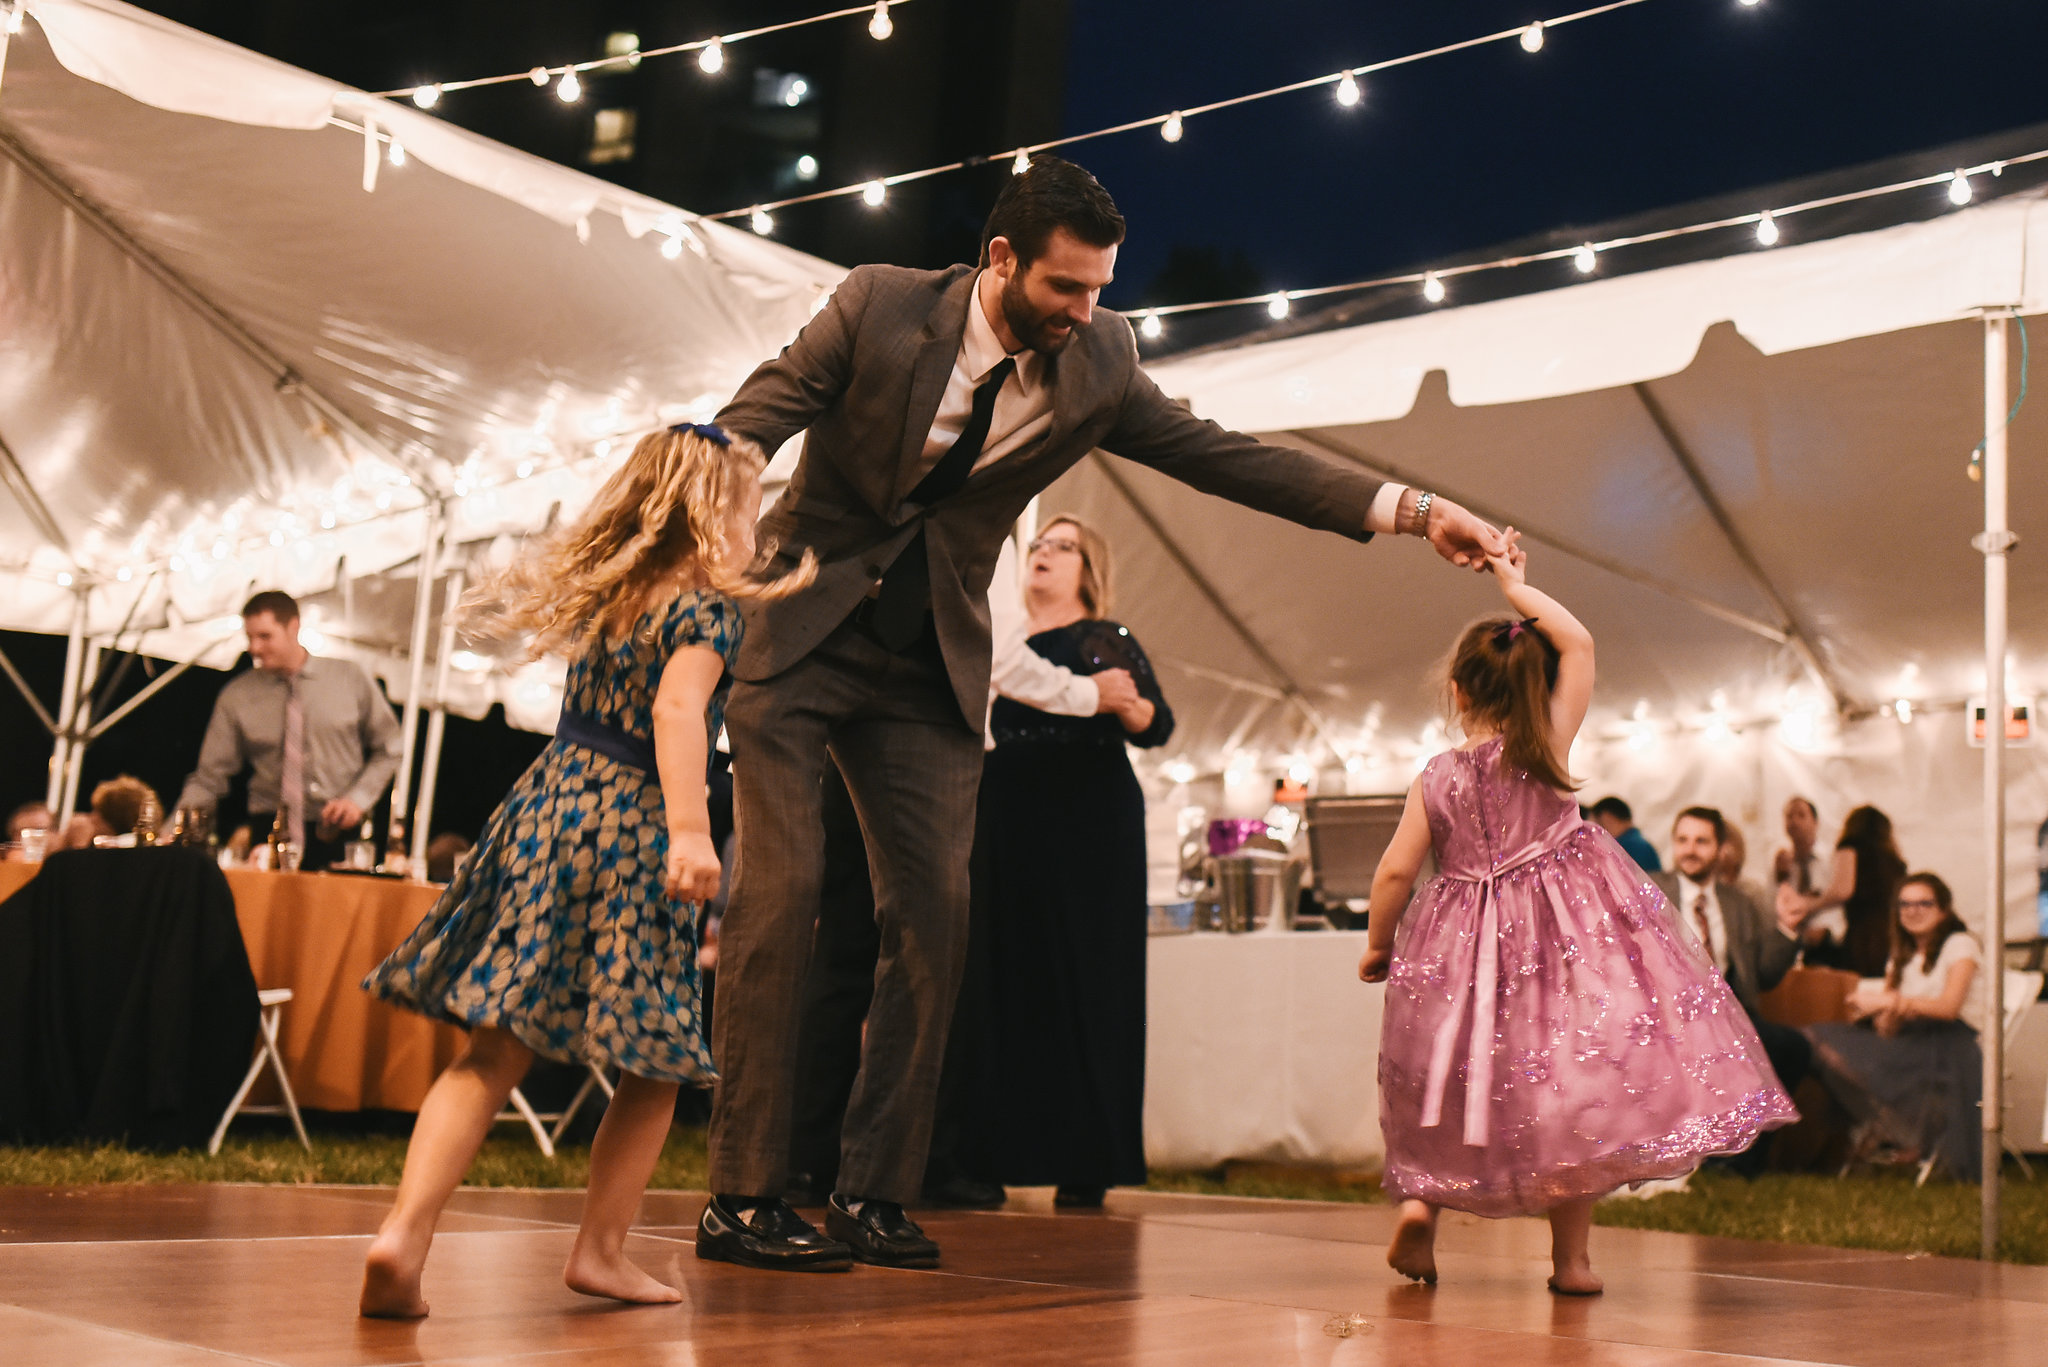 Baltimore, Canton, Modern, Outdoor Reception, Maryland Wedding Photographer, Romantic, Classic, Boston Street Pier Park, Guest dancing with little girls at reception